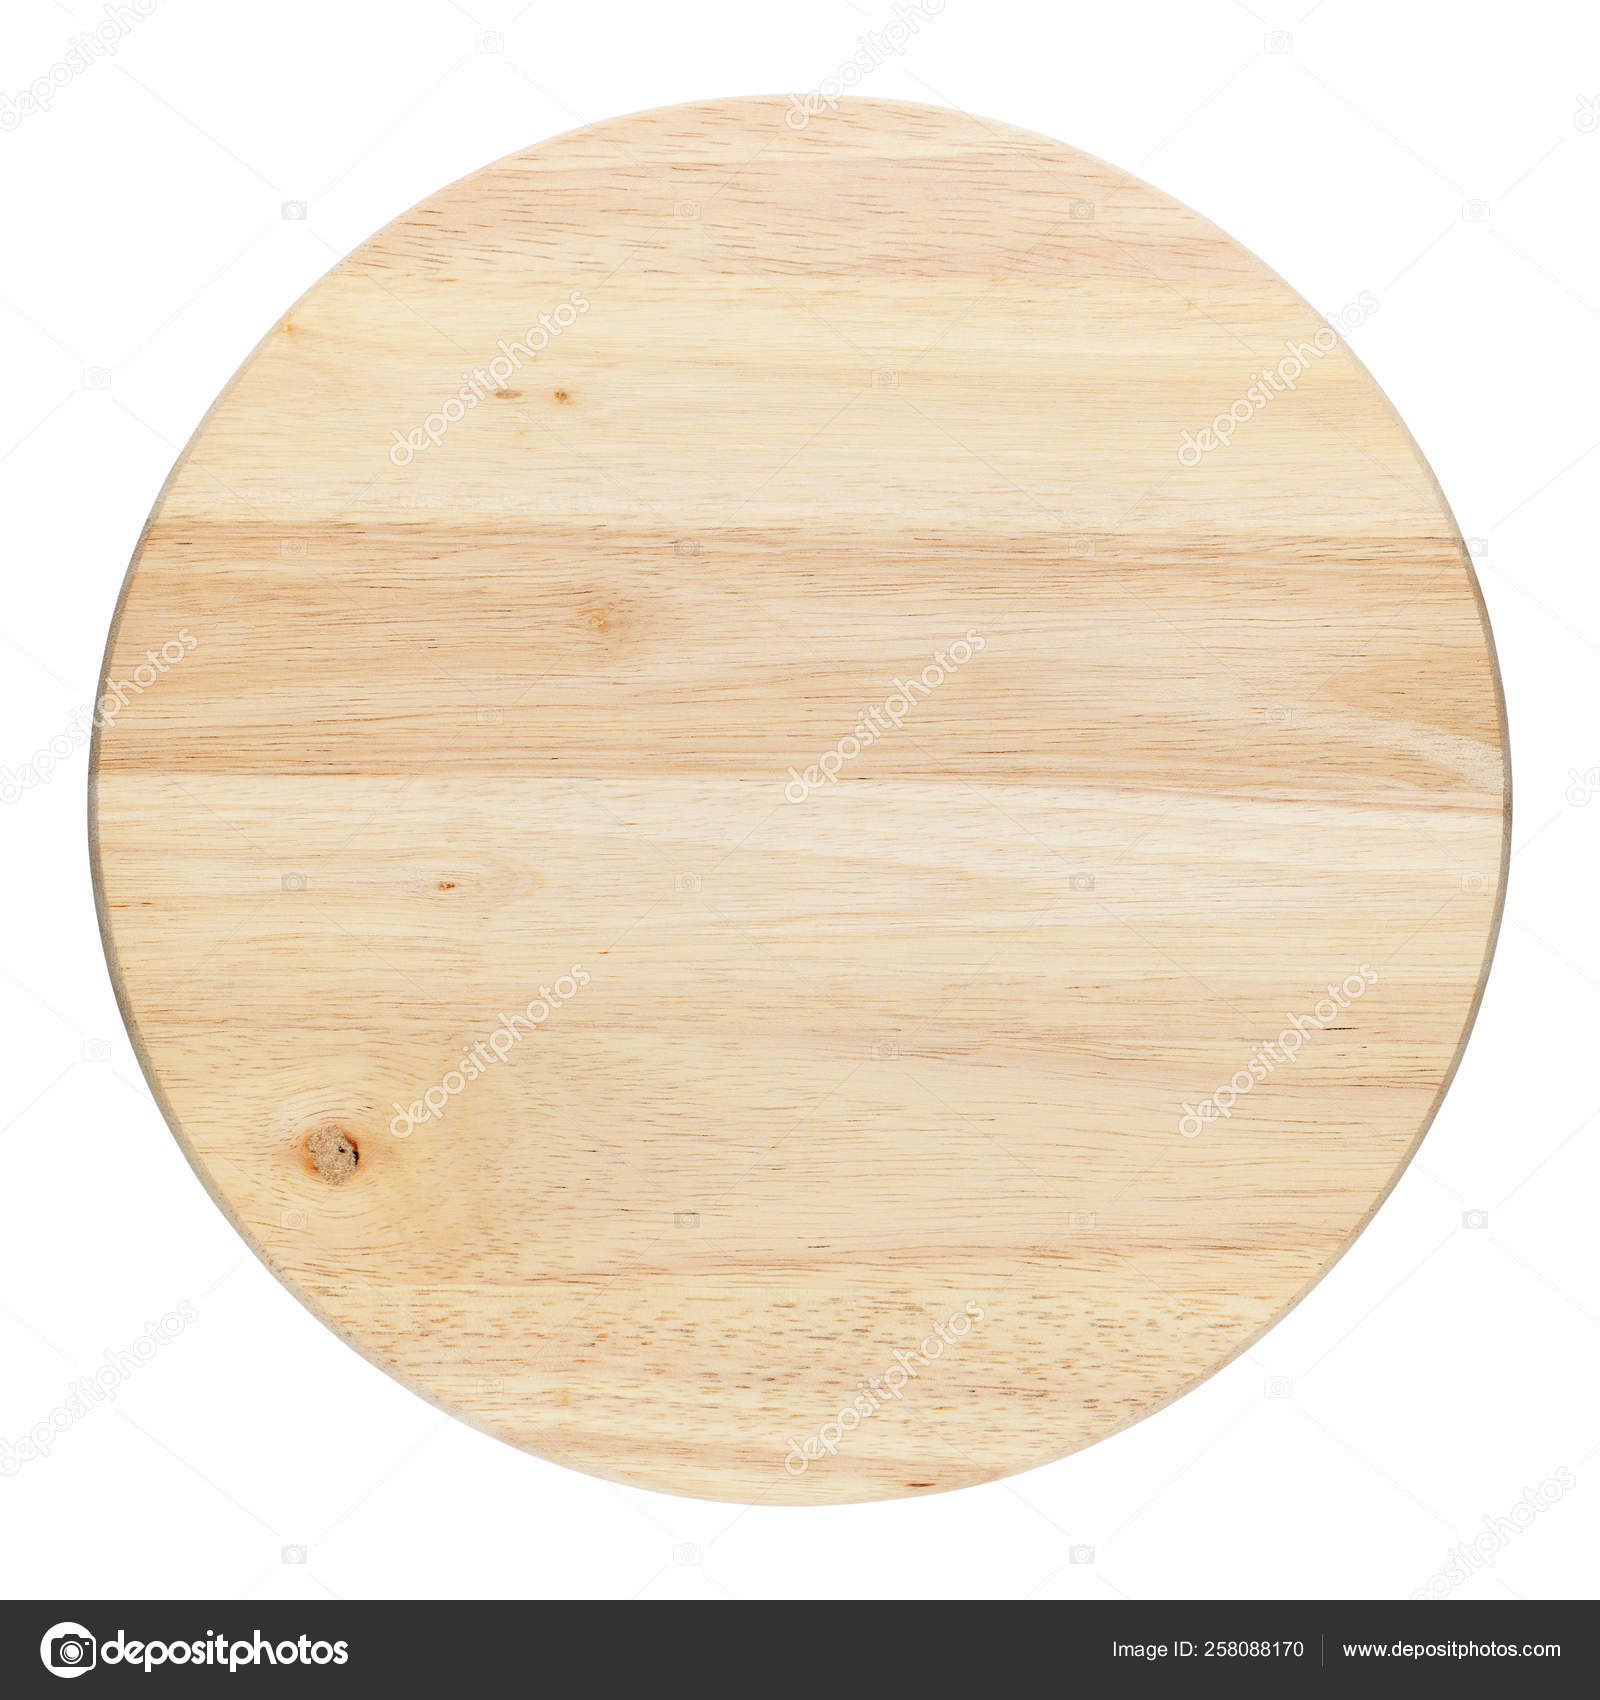 Round Wooden Cutting Board Isolated On White Background Stock Photo C Windujedi 258088170